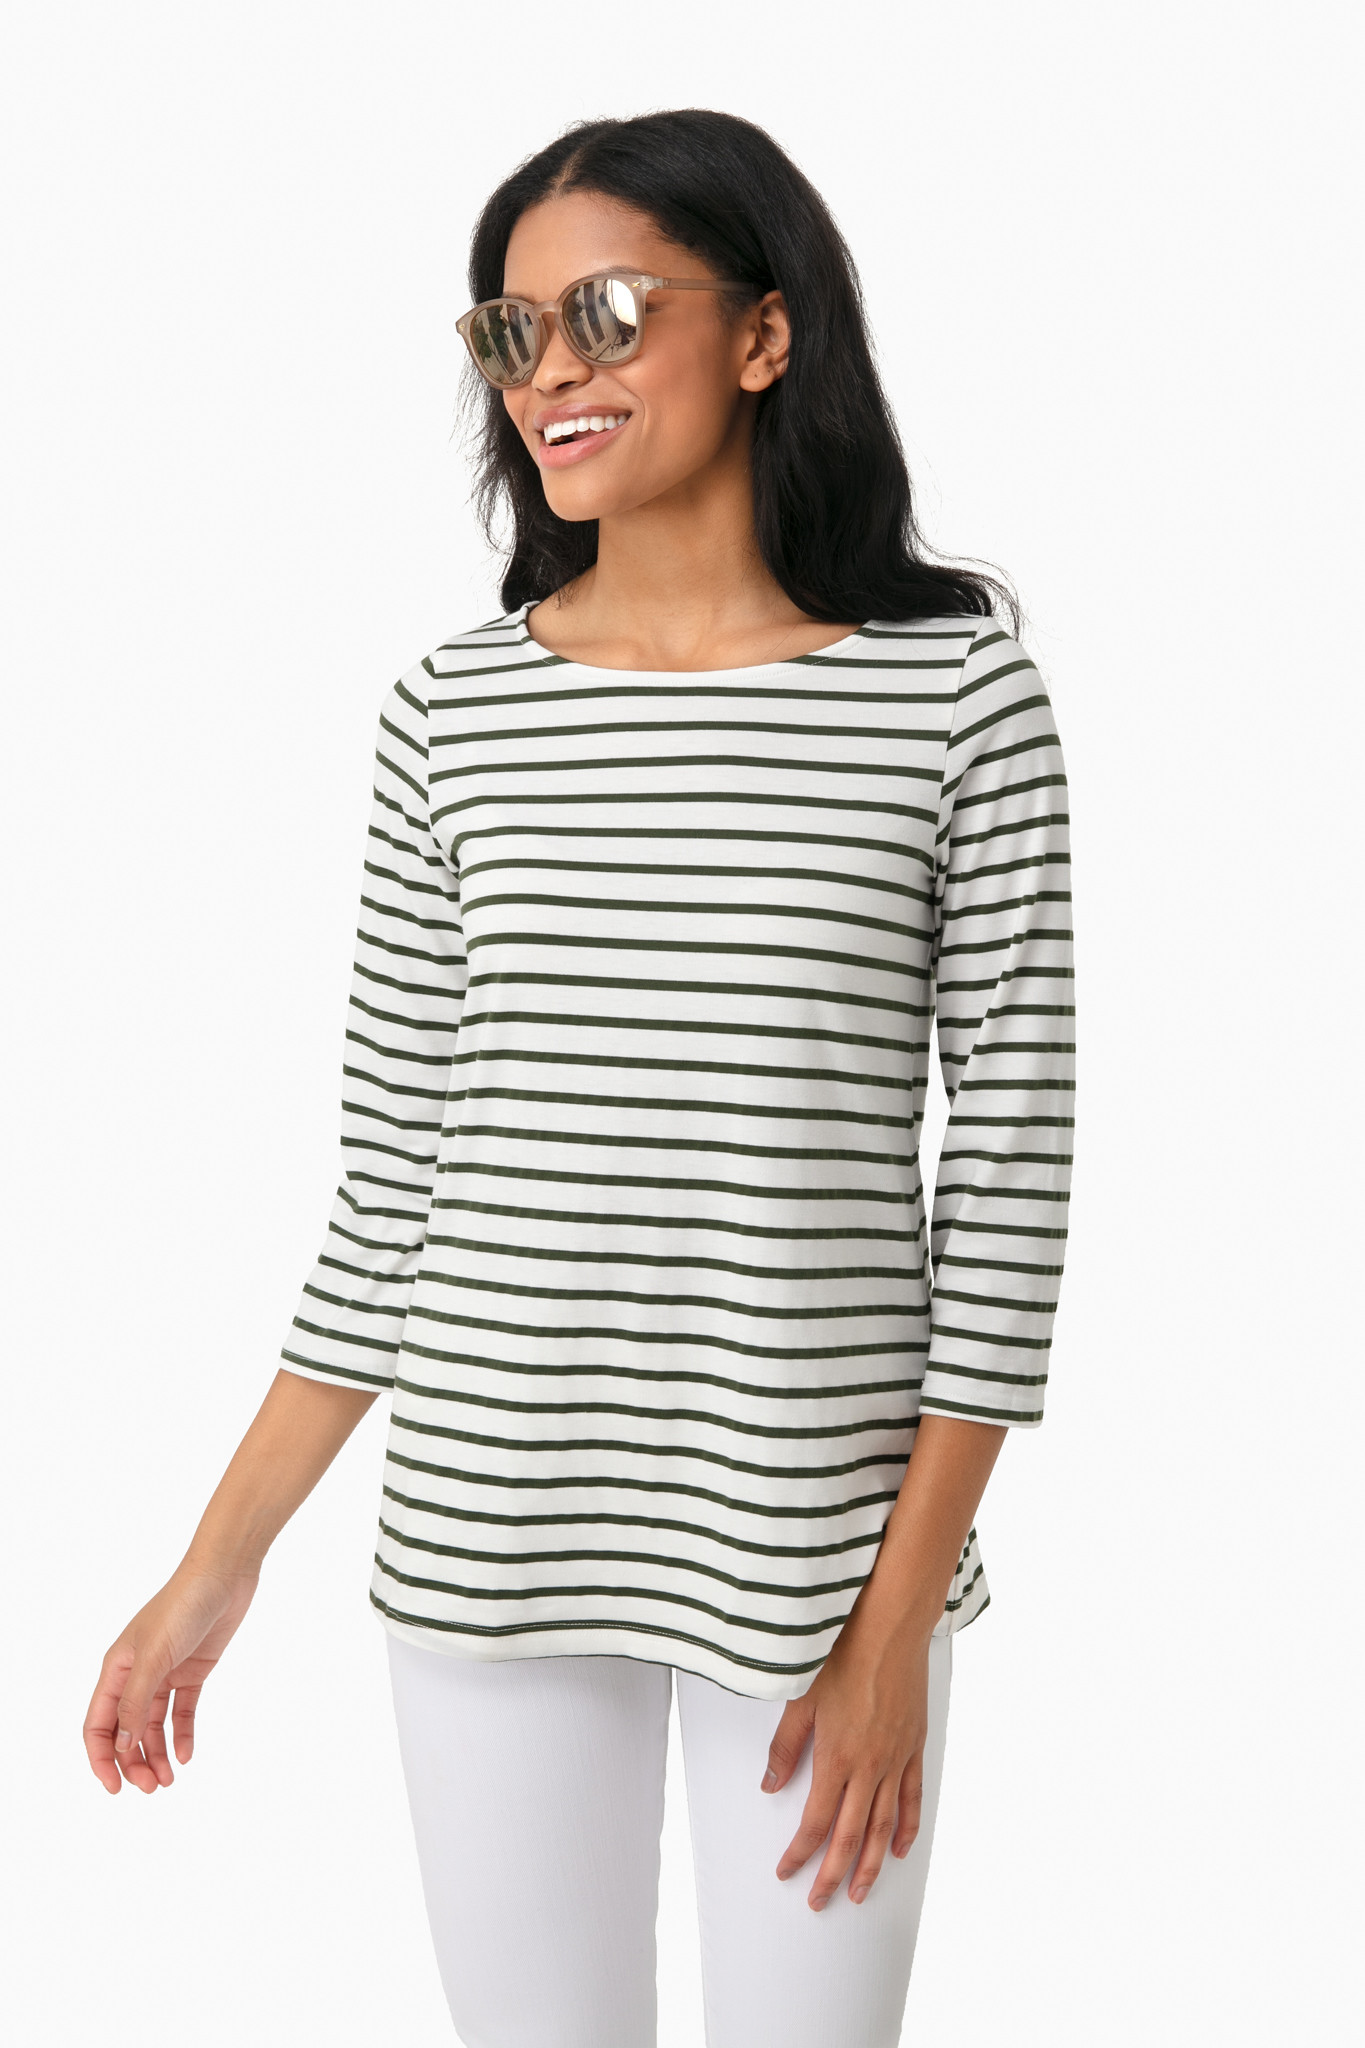 Olive and White Striped Tee